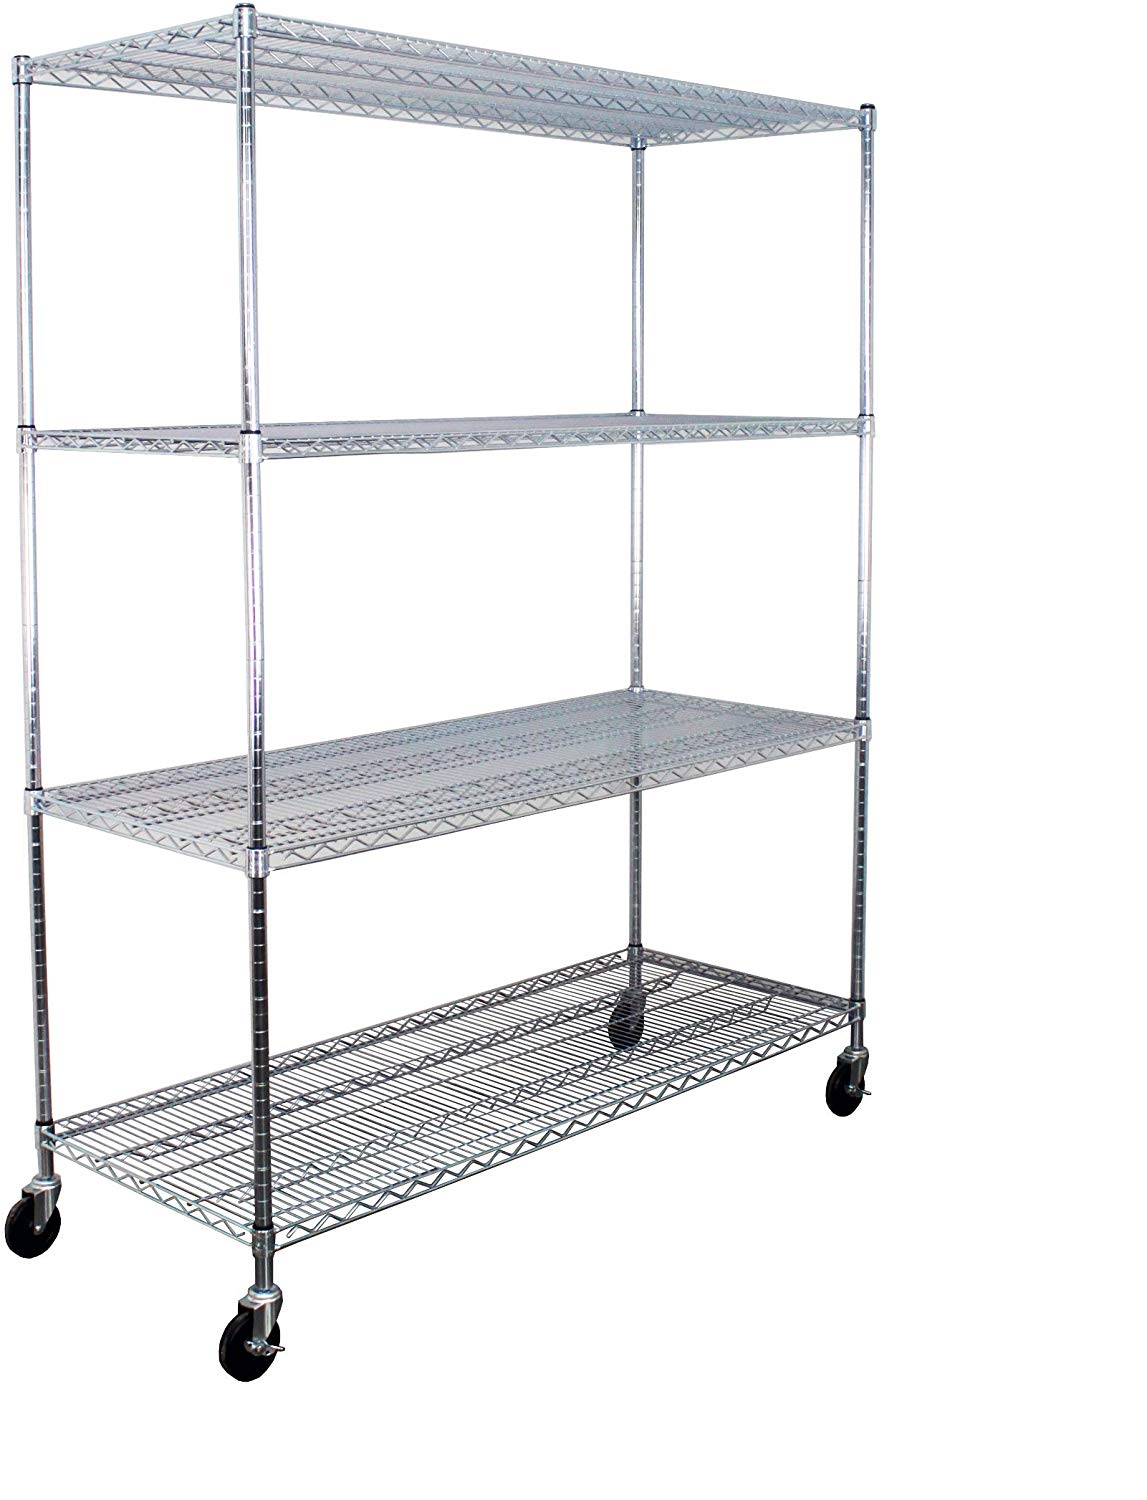 "4 Shelf Steel Wire Storage Rack: 24""D x 60""W x 74""H"